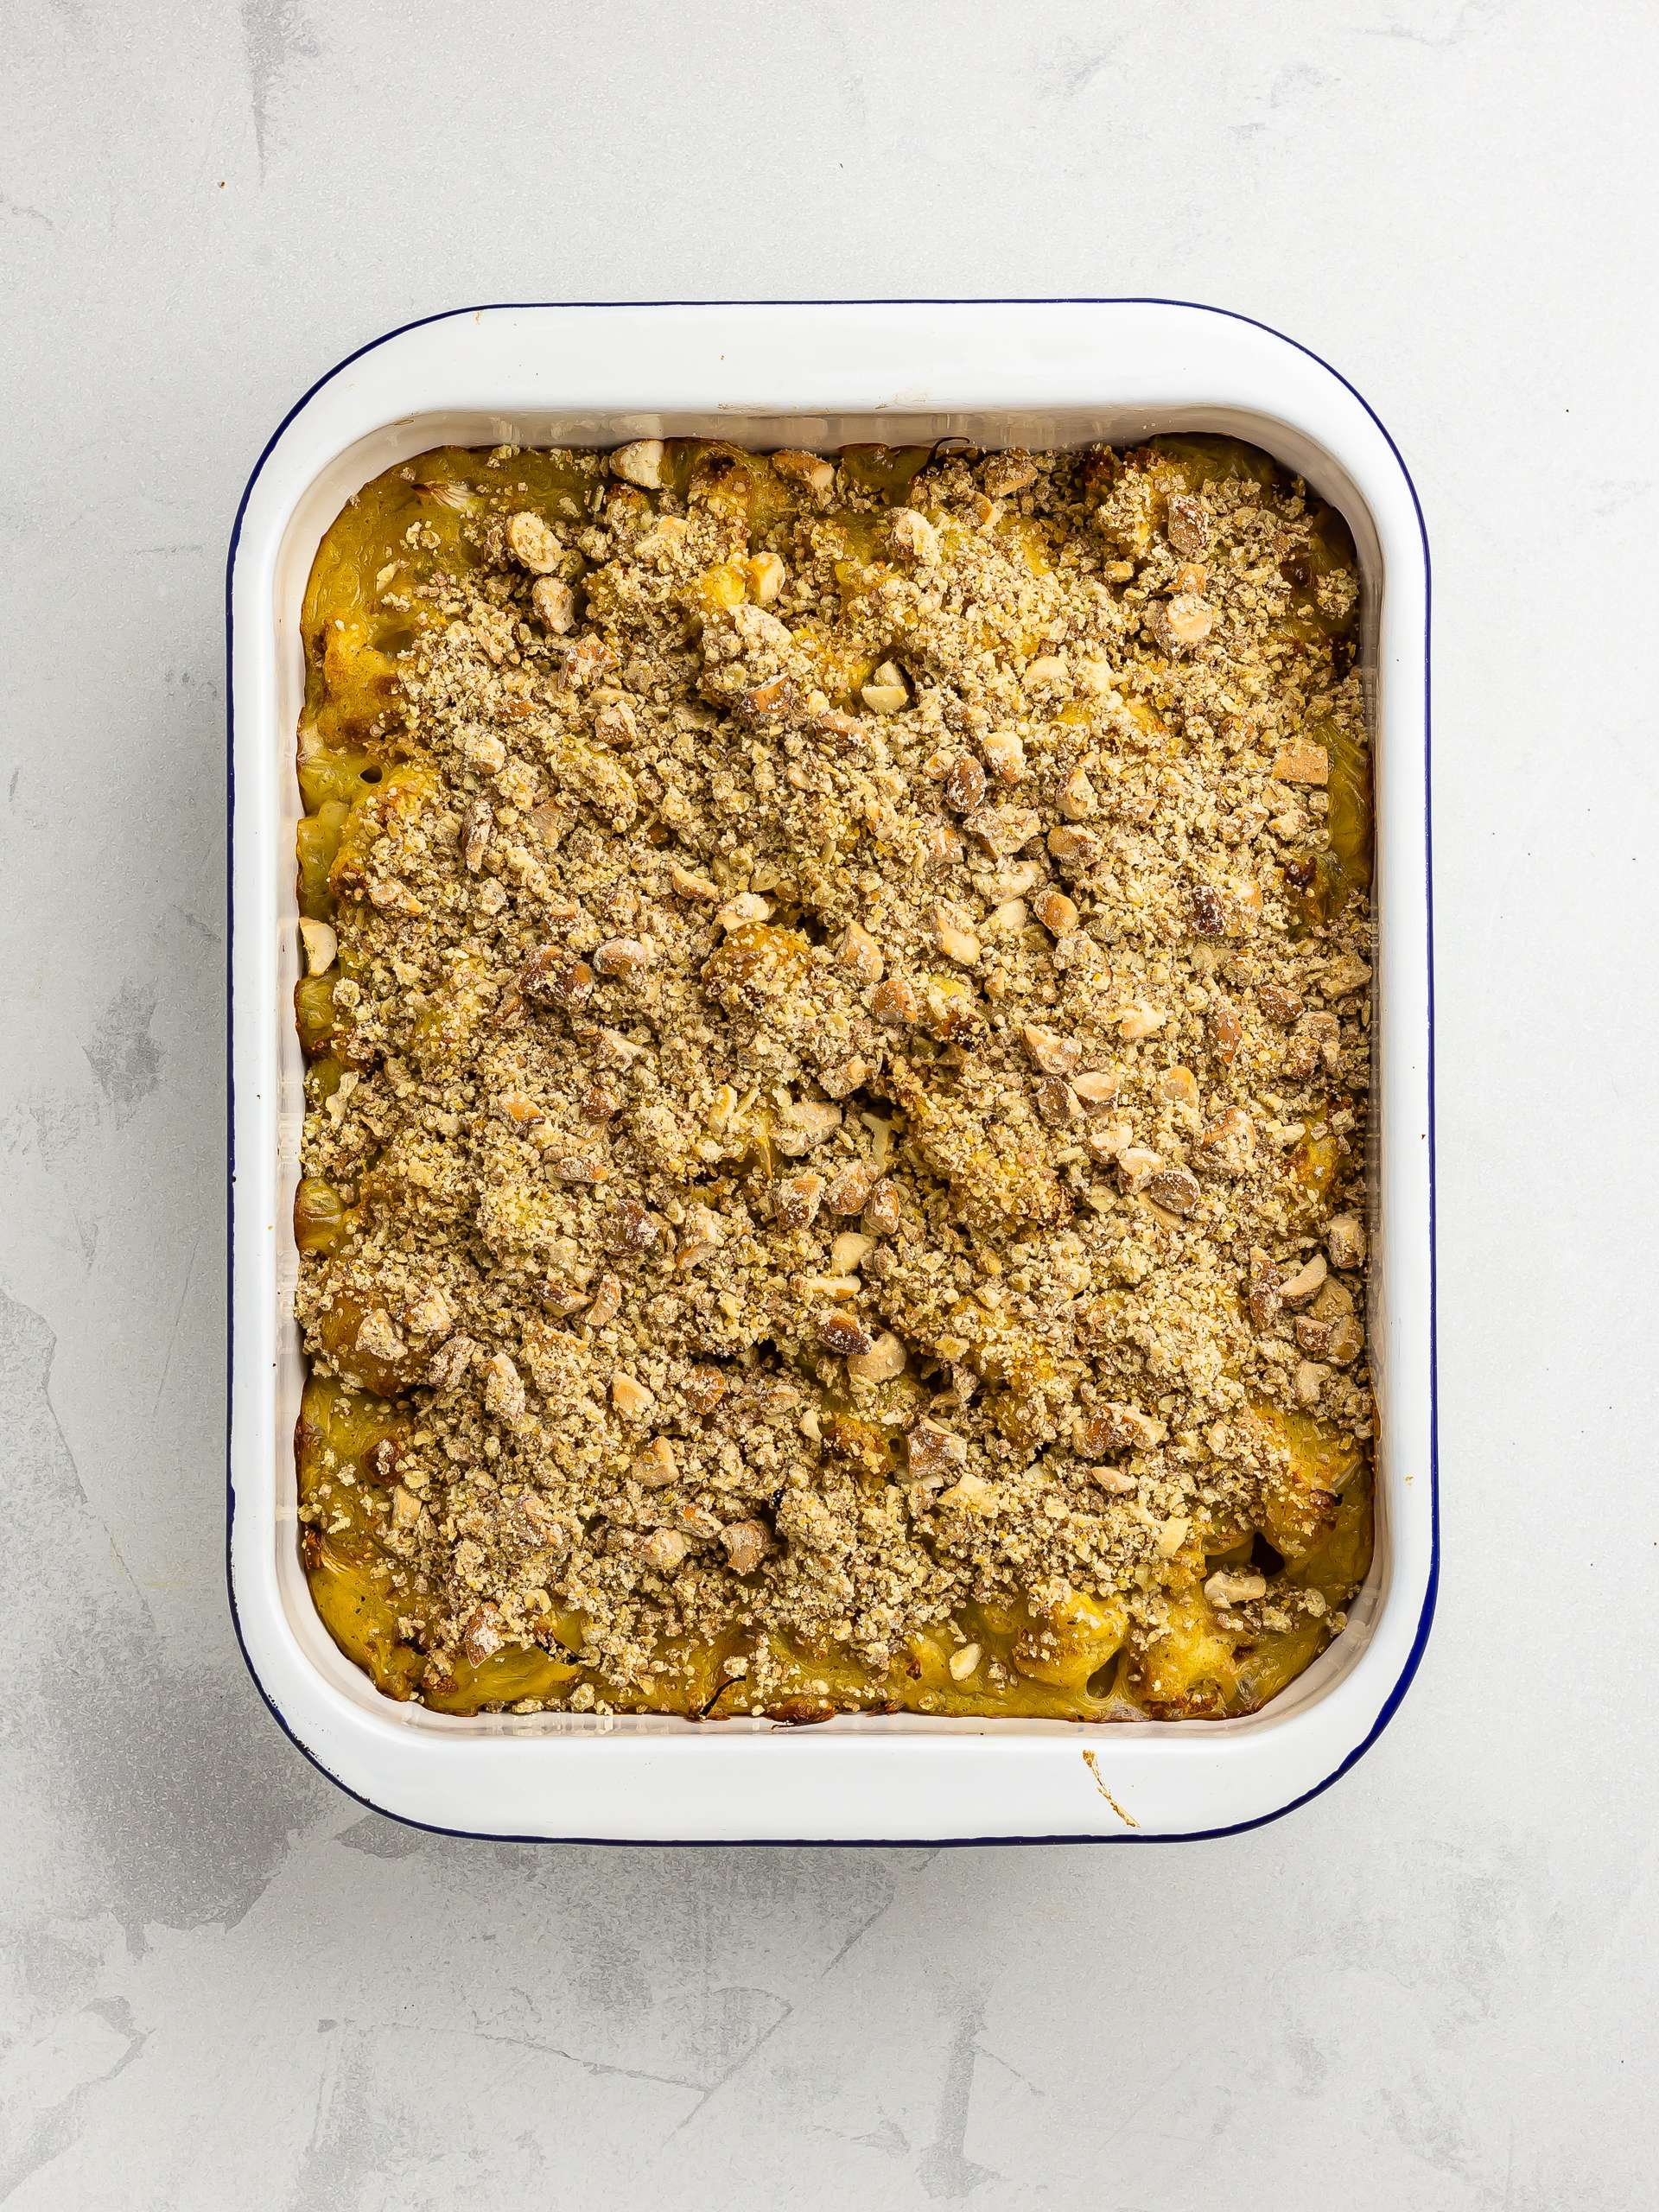 oven baked cauliflower crumble